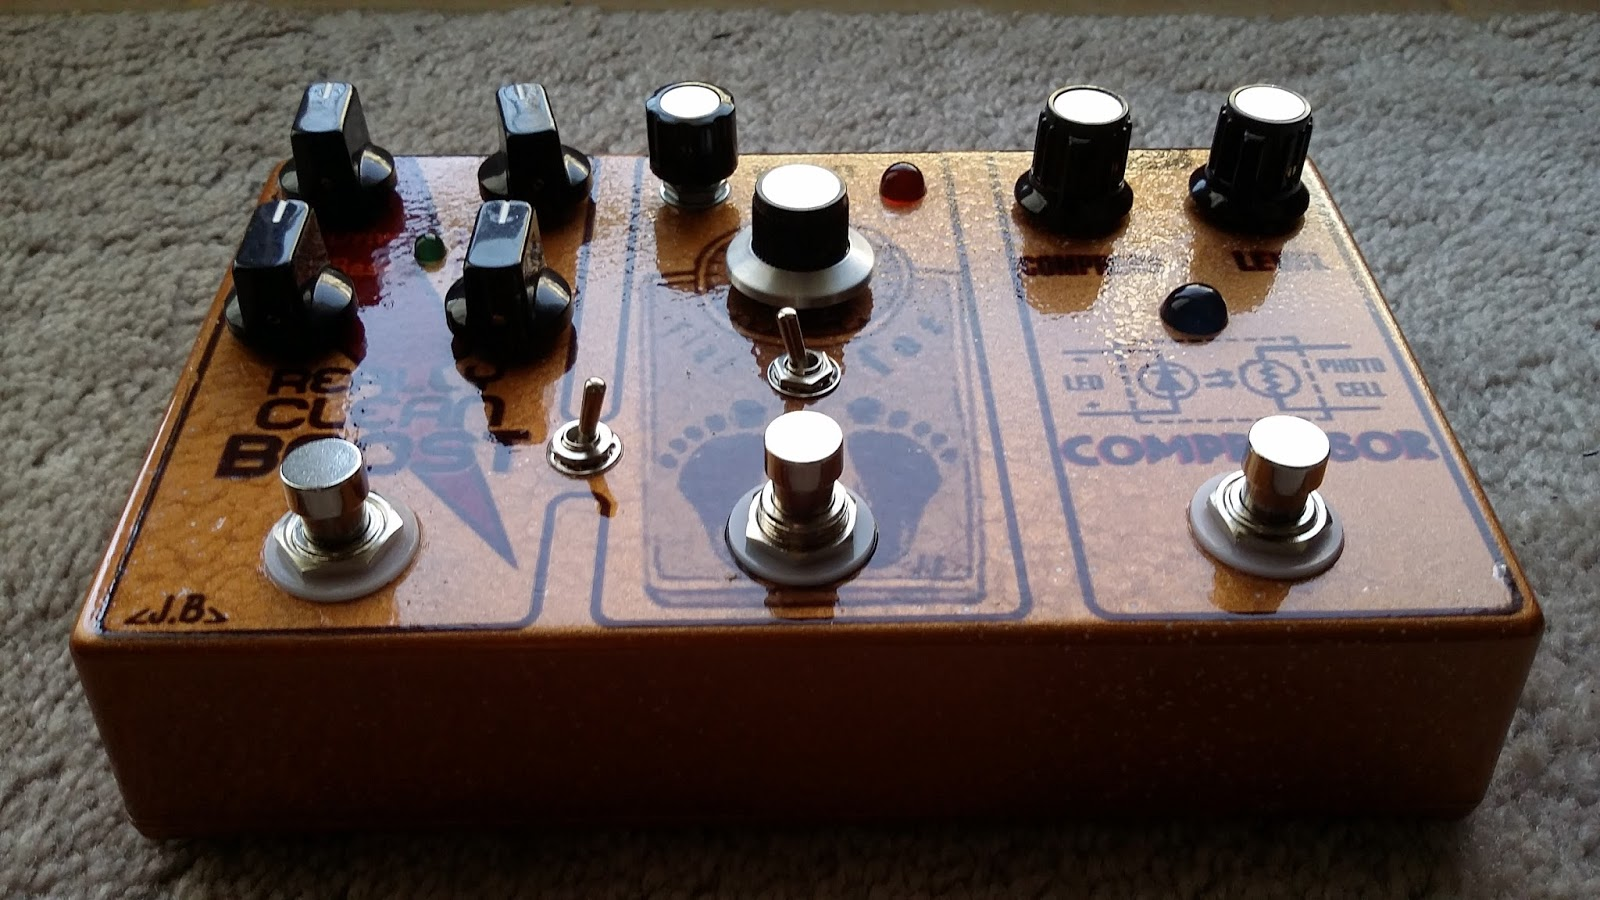 jb pedals compressor comes first and the other two effects can switch order by flipping the middle switch